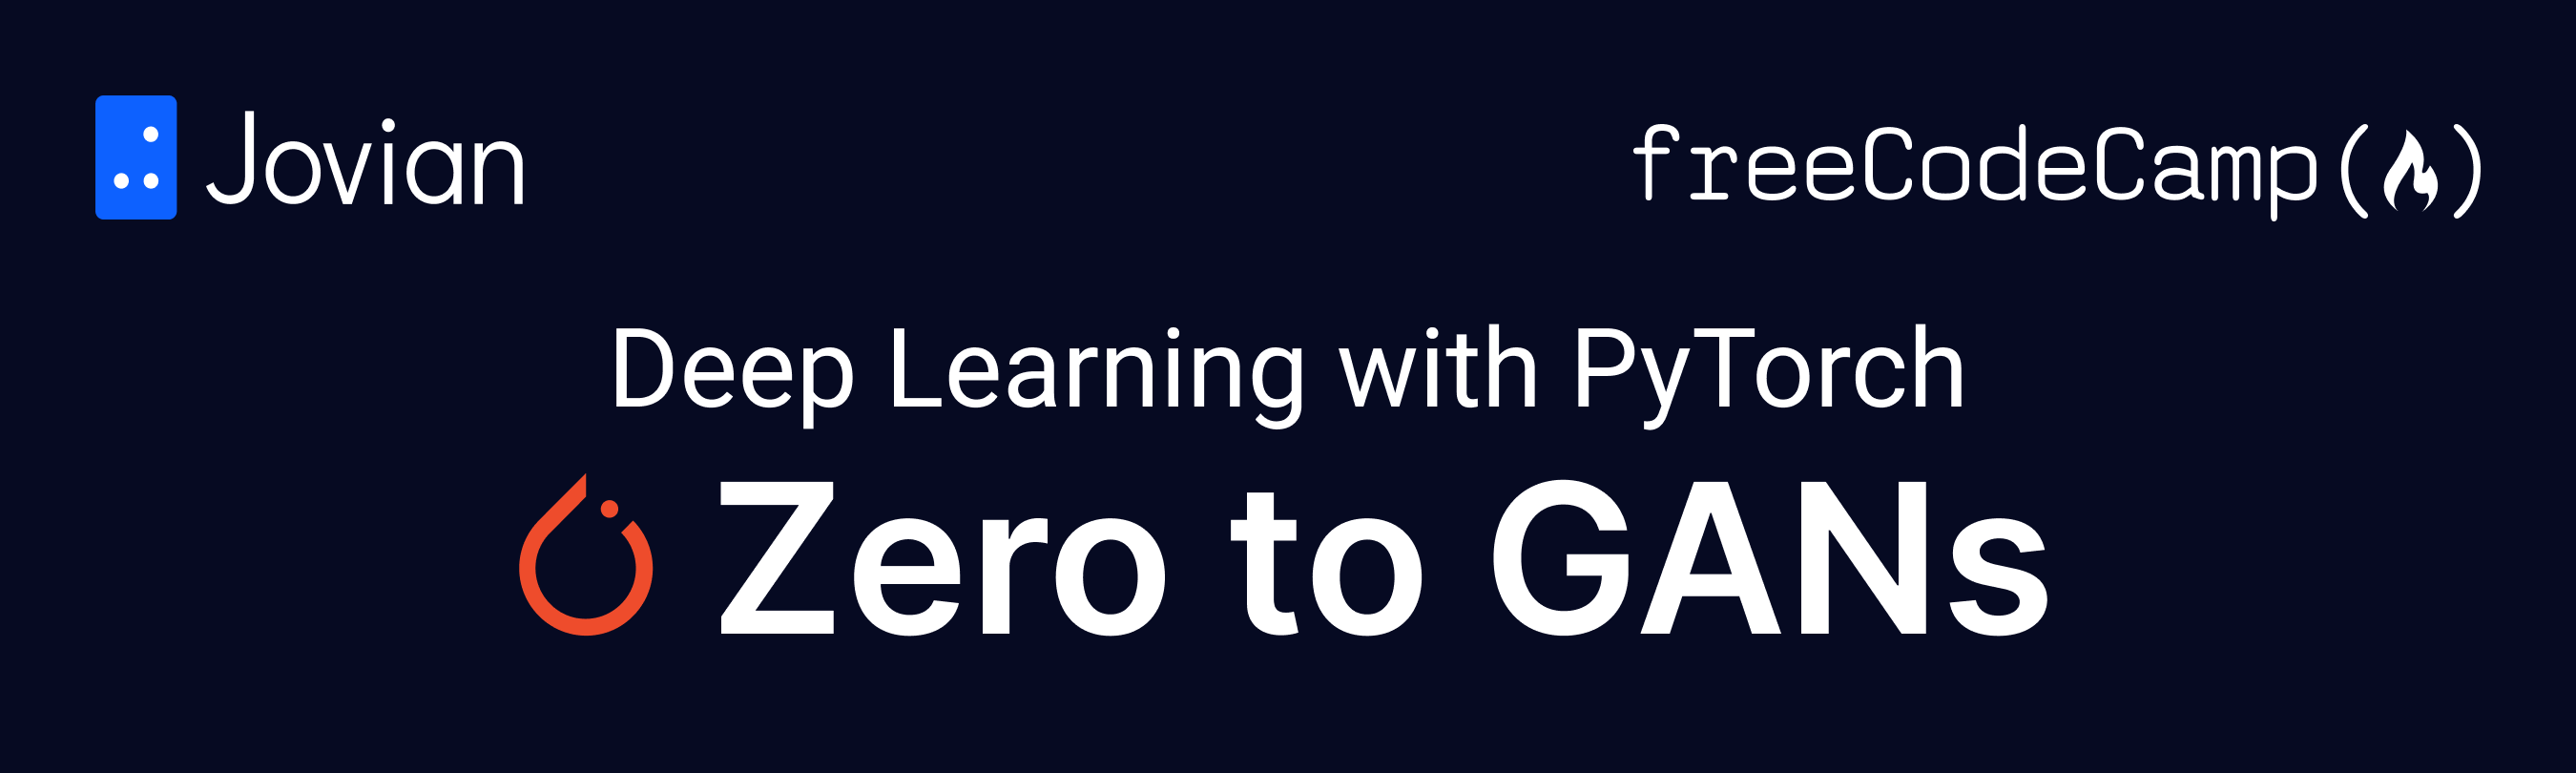 Deep Learning with PyTorch: Zero to GANs